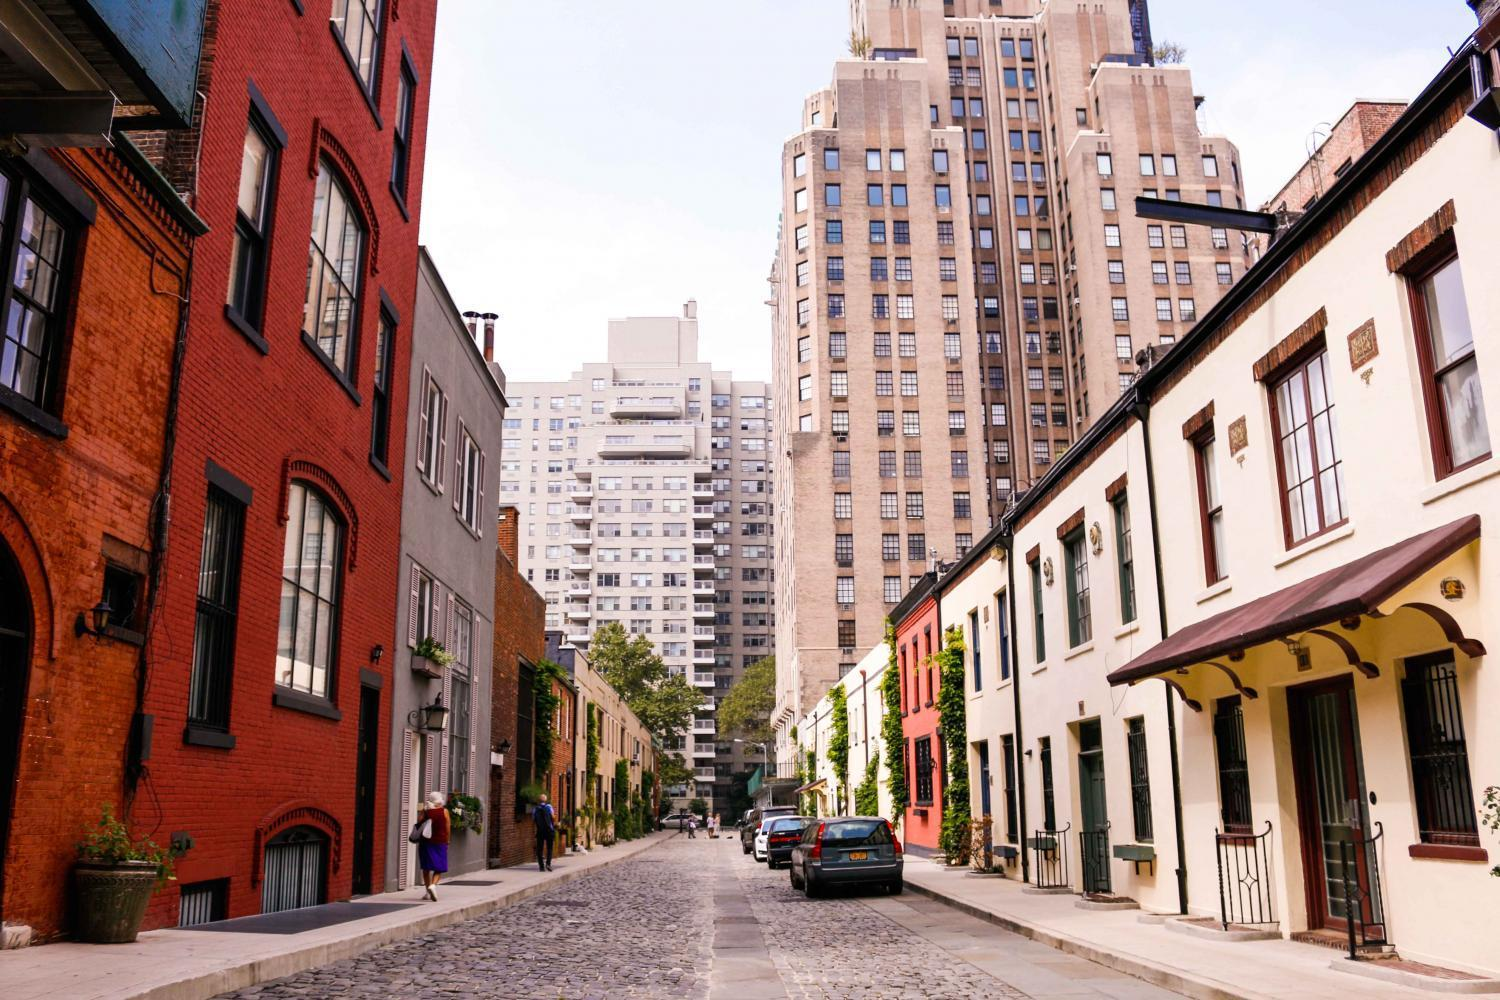 Washington+Mews%2C+located+between+Fifth+Avenue+and+University+Place%2C+is+home+to+many+of+NYU%E2%80%99s+international+houses.+NYU+hosts+more+international+students+than+any+other+education+institution.